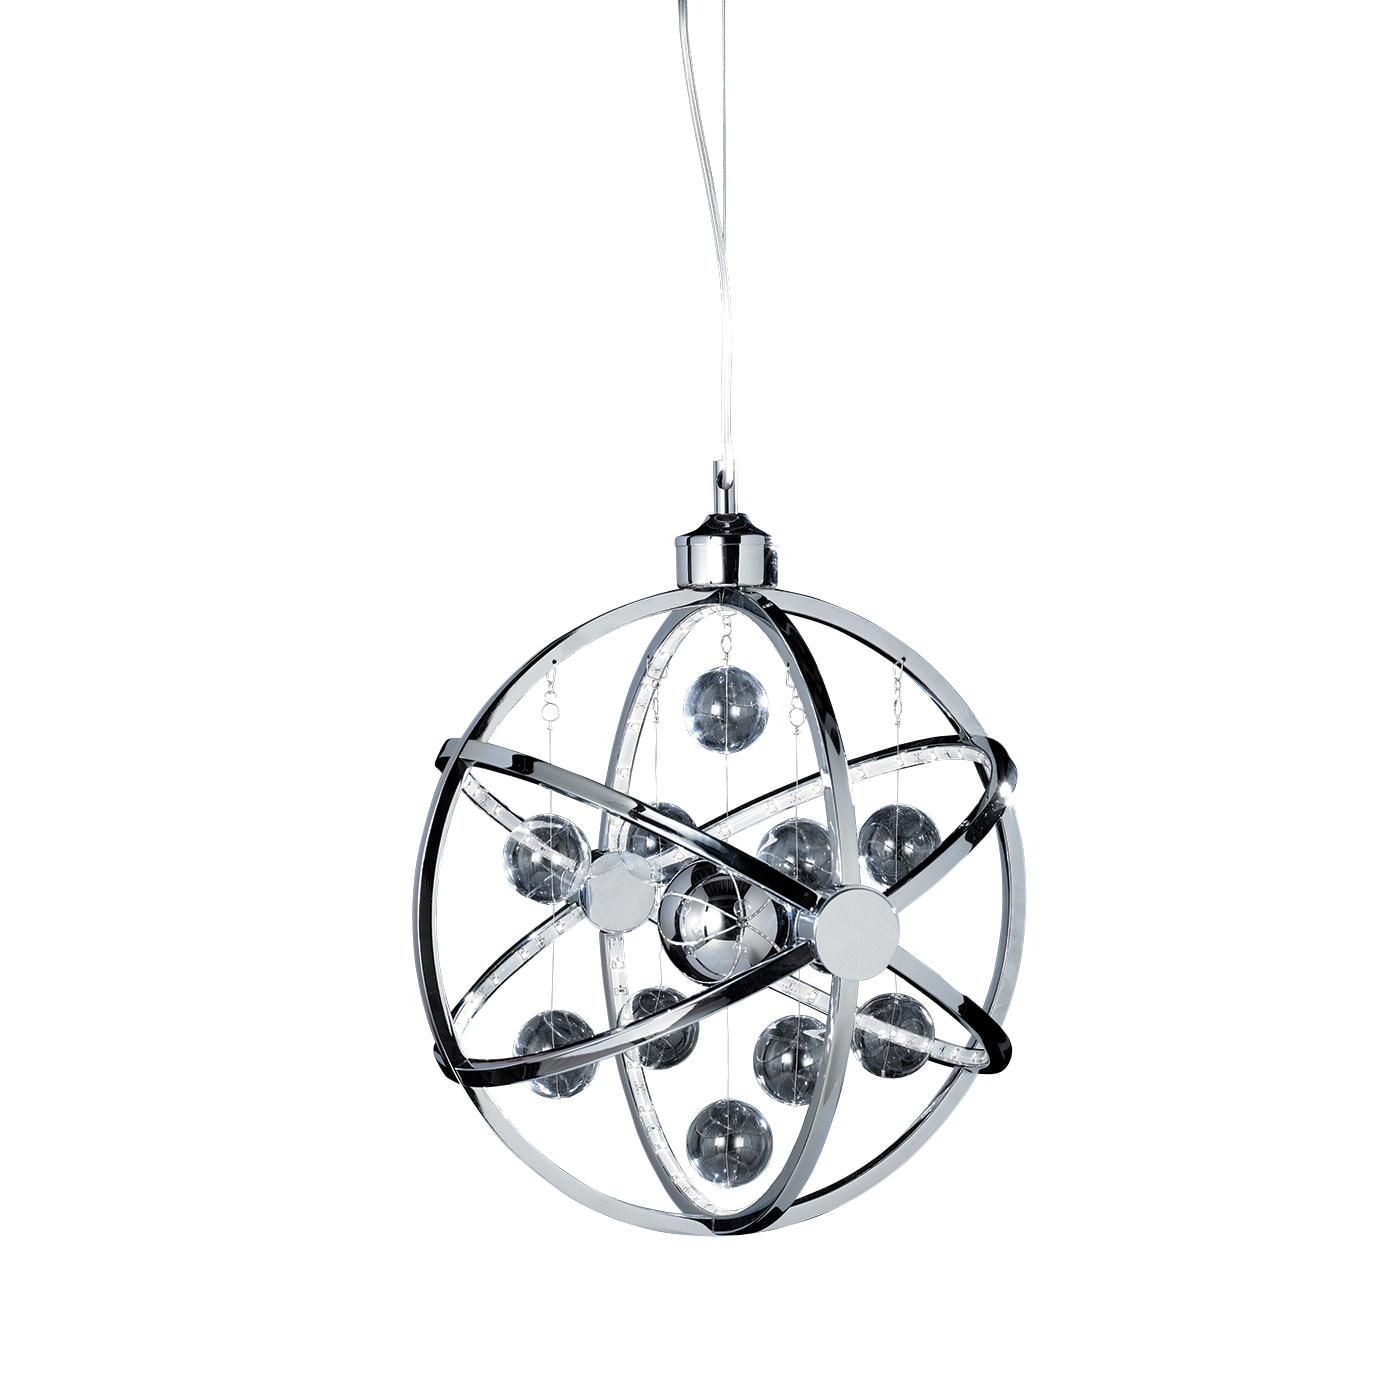 Endon Muni 390mm pendant 7.5W Chrome effect plate with